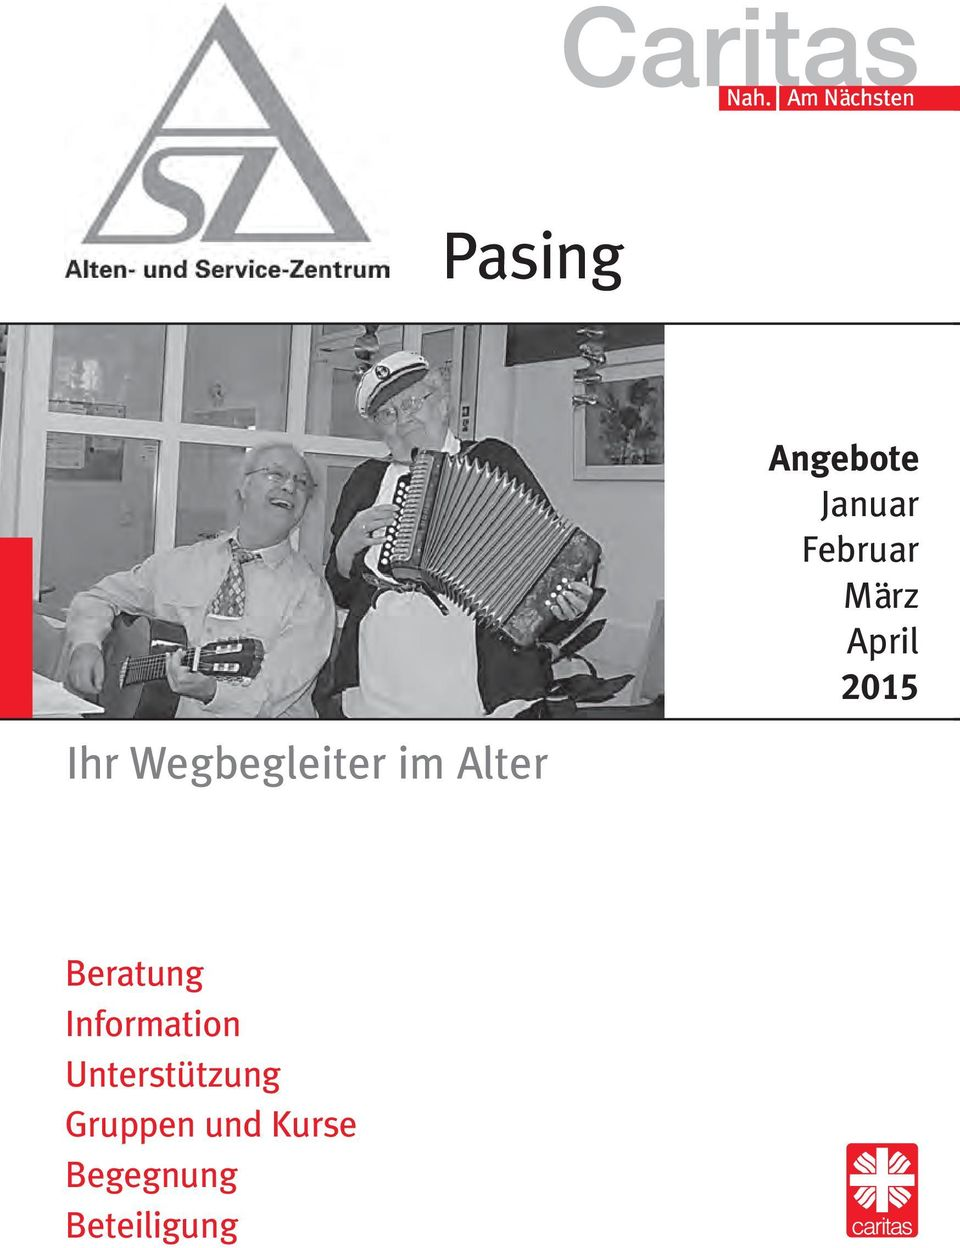 April 2015 Beratung Information